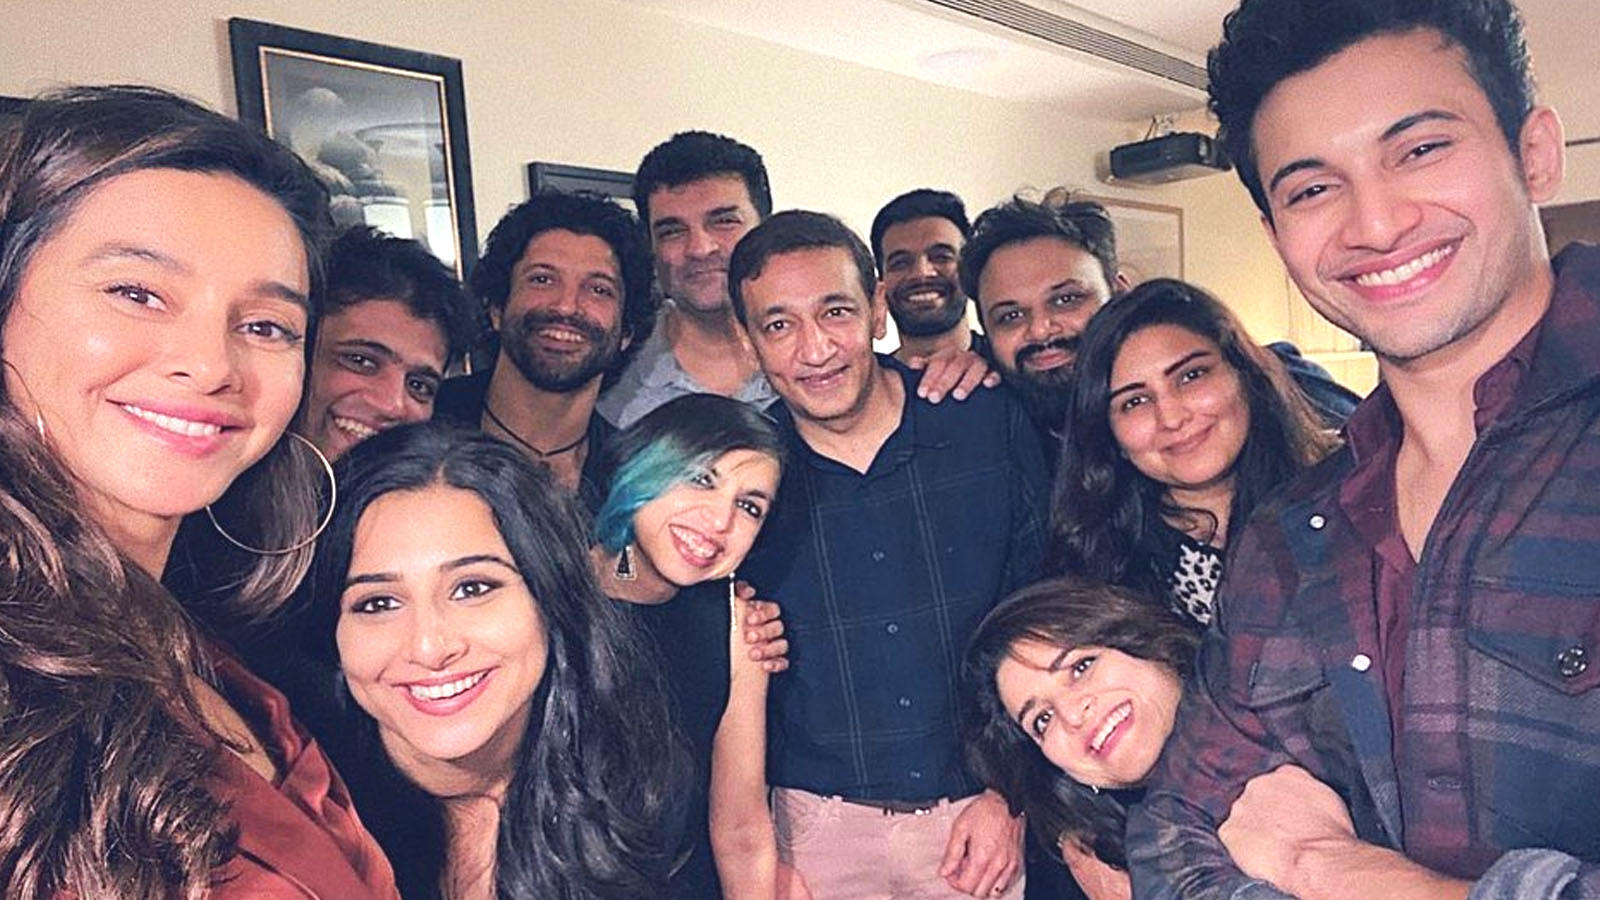 The Sky Is Pink: Farhan Akhtar and Shibani Dandekar celebrate film's success with Vidya Balan sans Priyanka Chopra